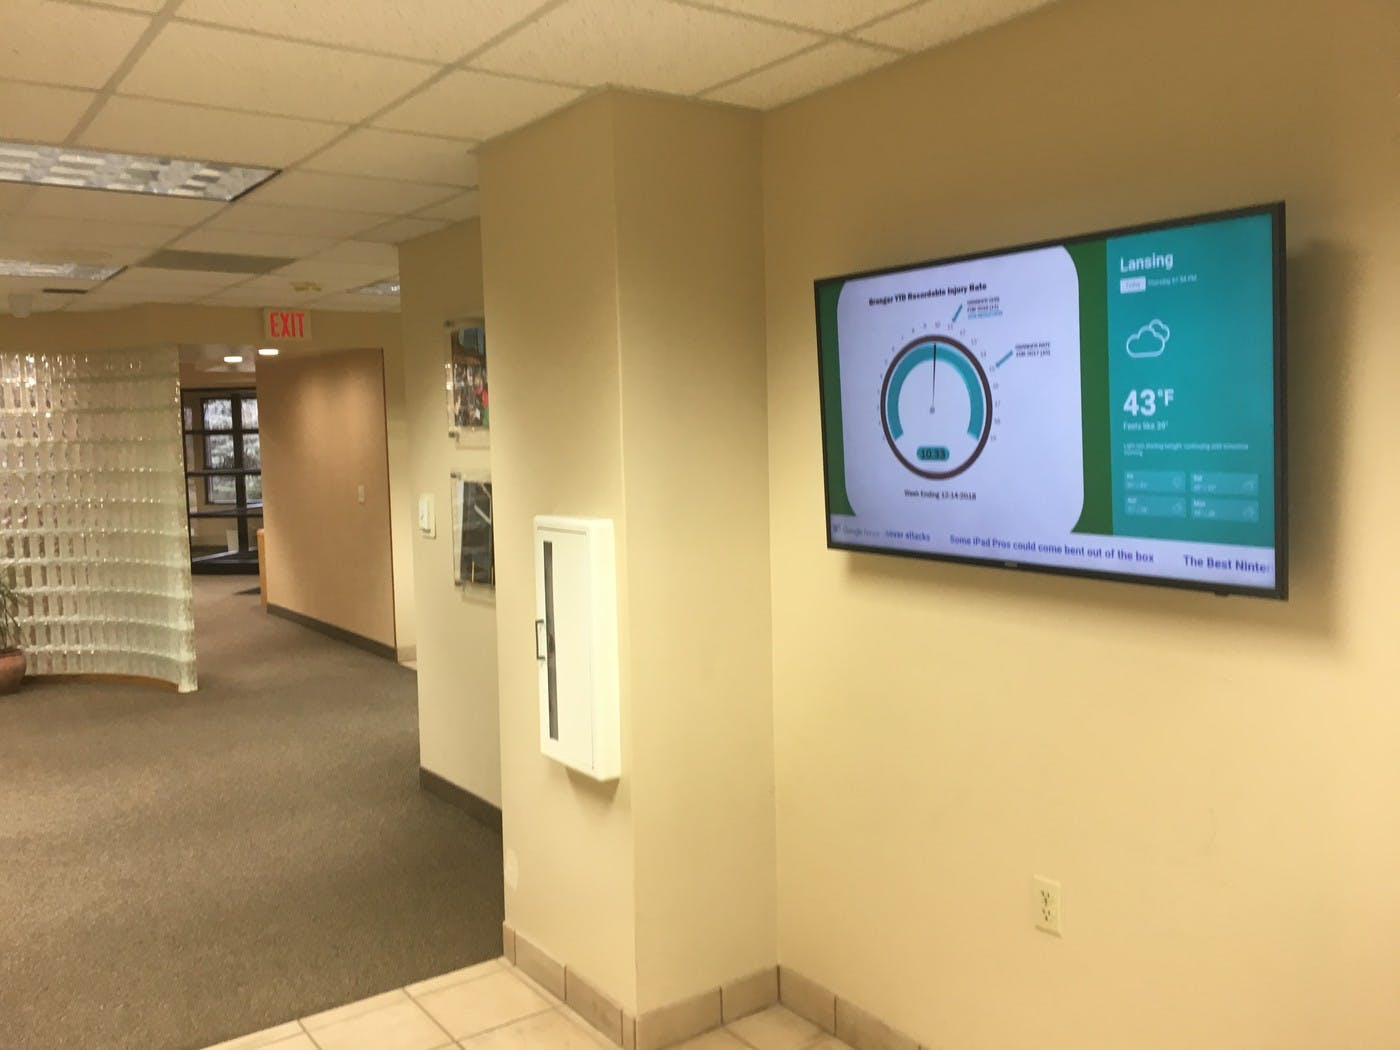 Michigan Waste Removal Company Granger Uses ScreenCloud to Increase Safety Awareness Among Employees